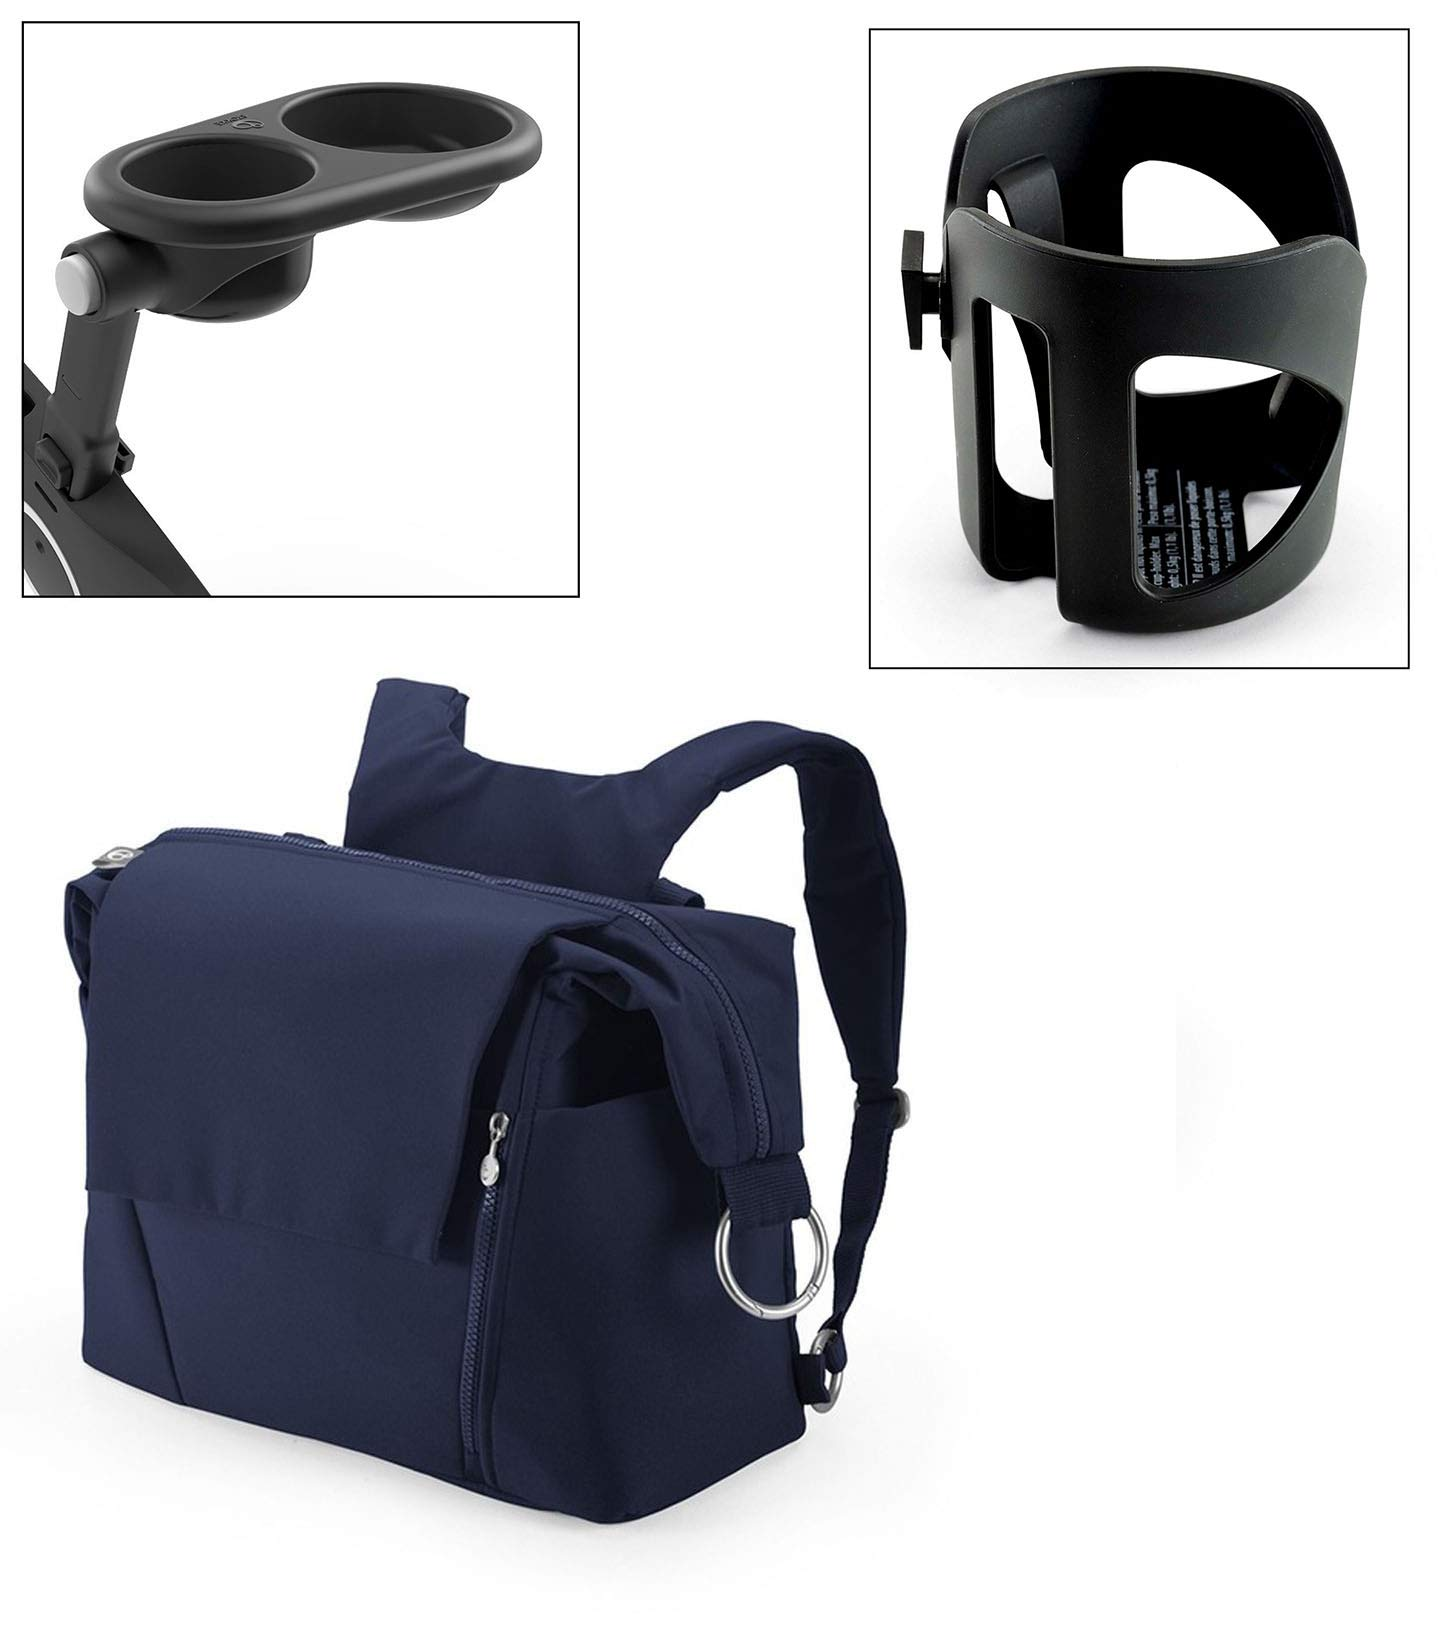 Stokke Xplory Cup Holder, Snack Tray, and Deep Blue Changing Bag Bundle